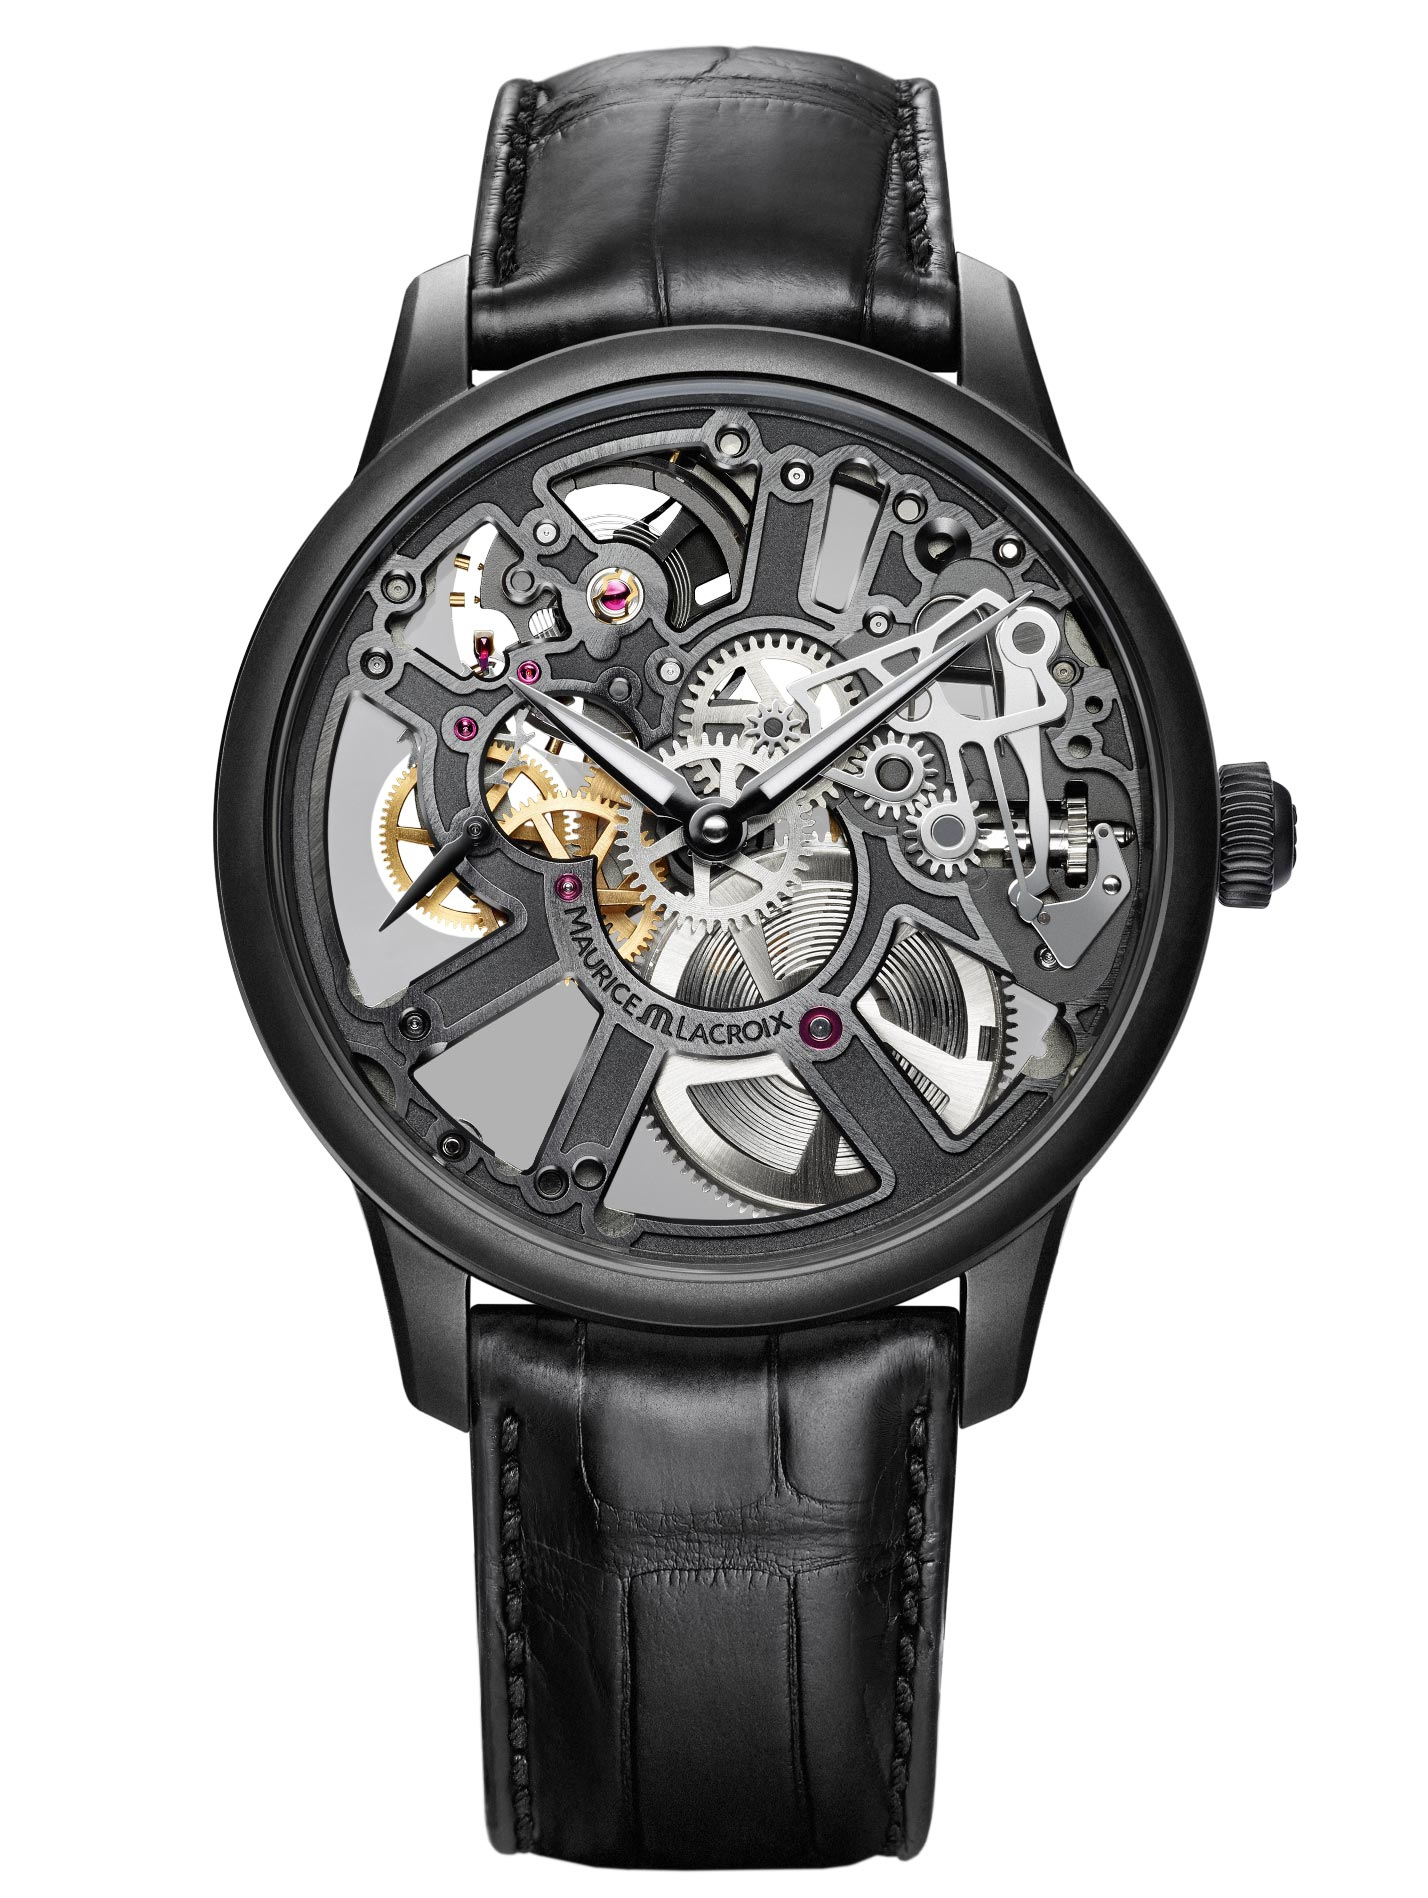 Maurice Lacroix Masterpiece Skeleton, skeleton watches